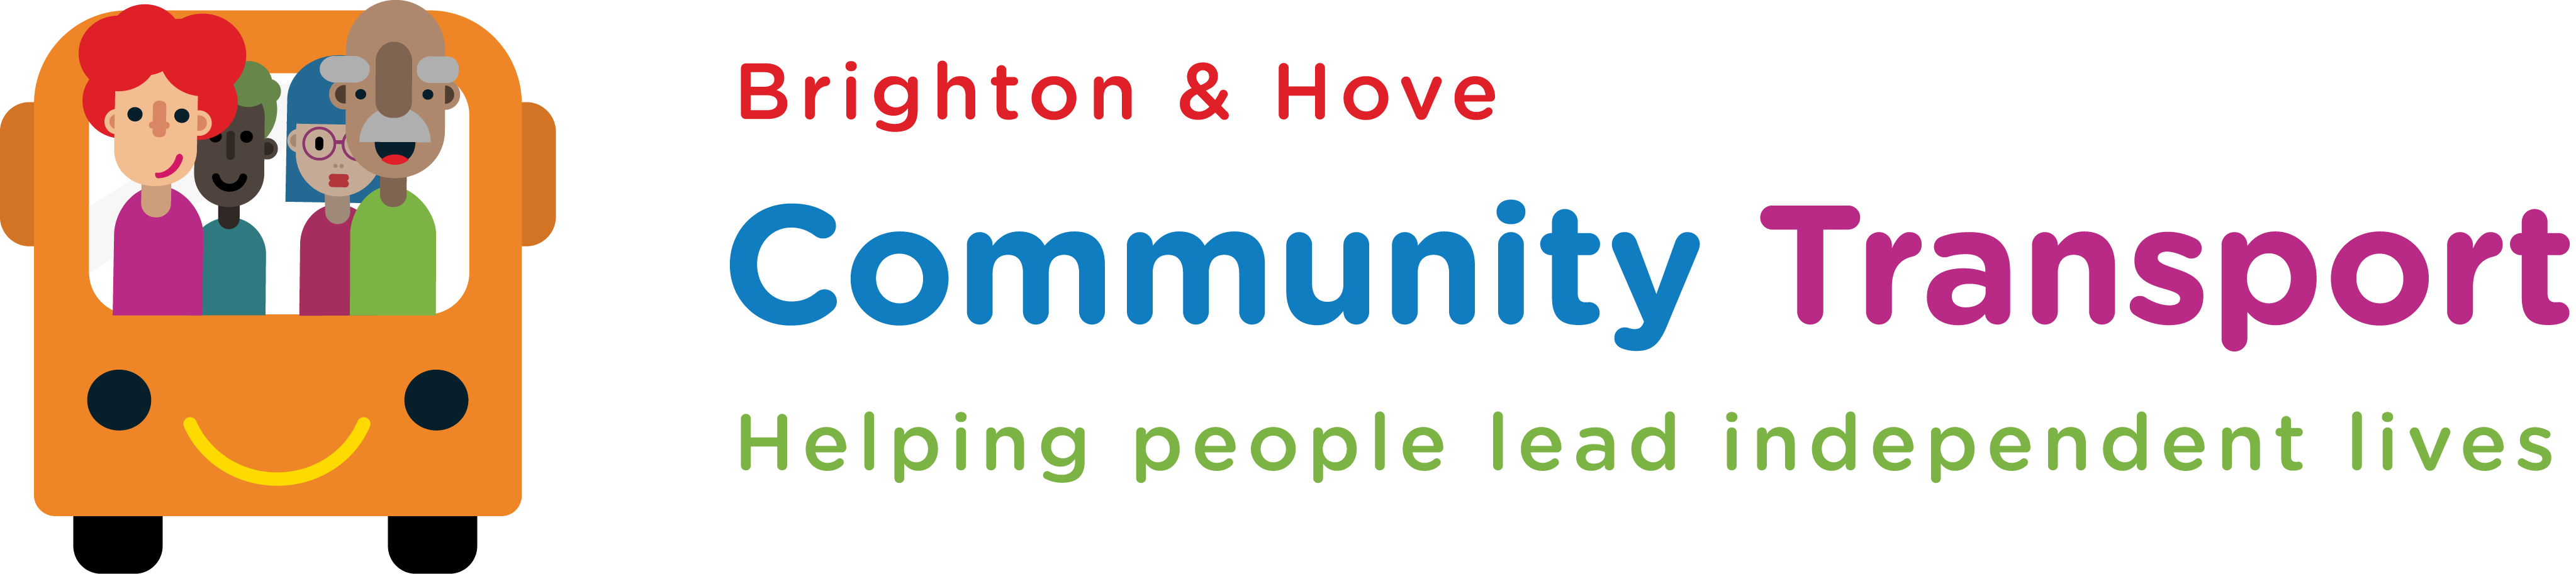 Brighton & Hove Community Transport